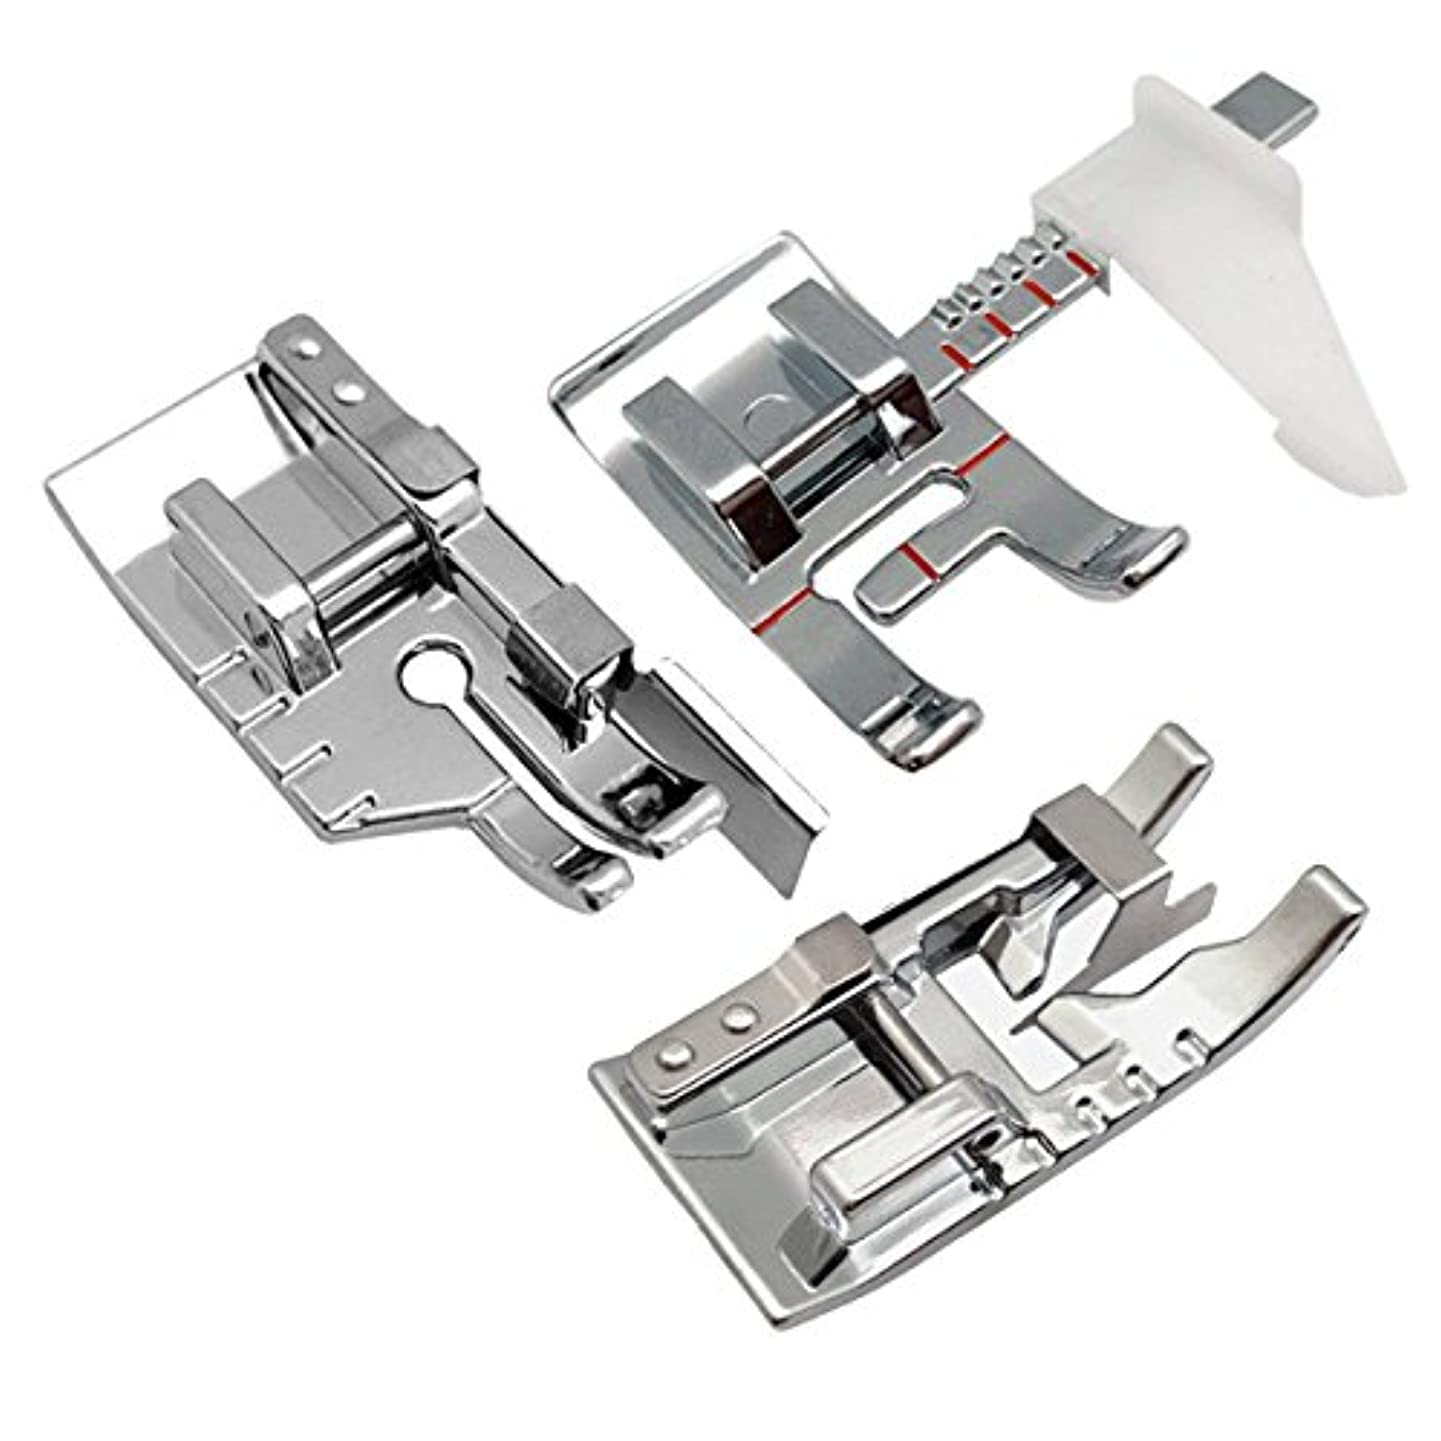 3pcs Sewing Machine Presser Foot Set-1/4 Inch Quilting Foot/Adjustable Guide Sewing Presser Foot/Edge Joining Stitch in The Ditch Sewing Presser Foot for Most Low Shank Sewing Manchine